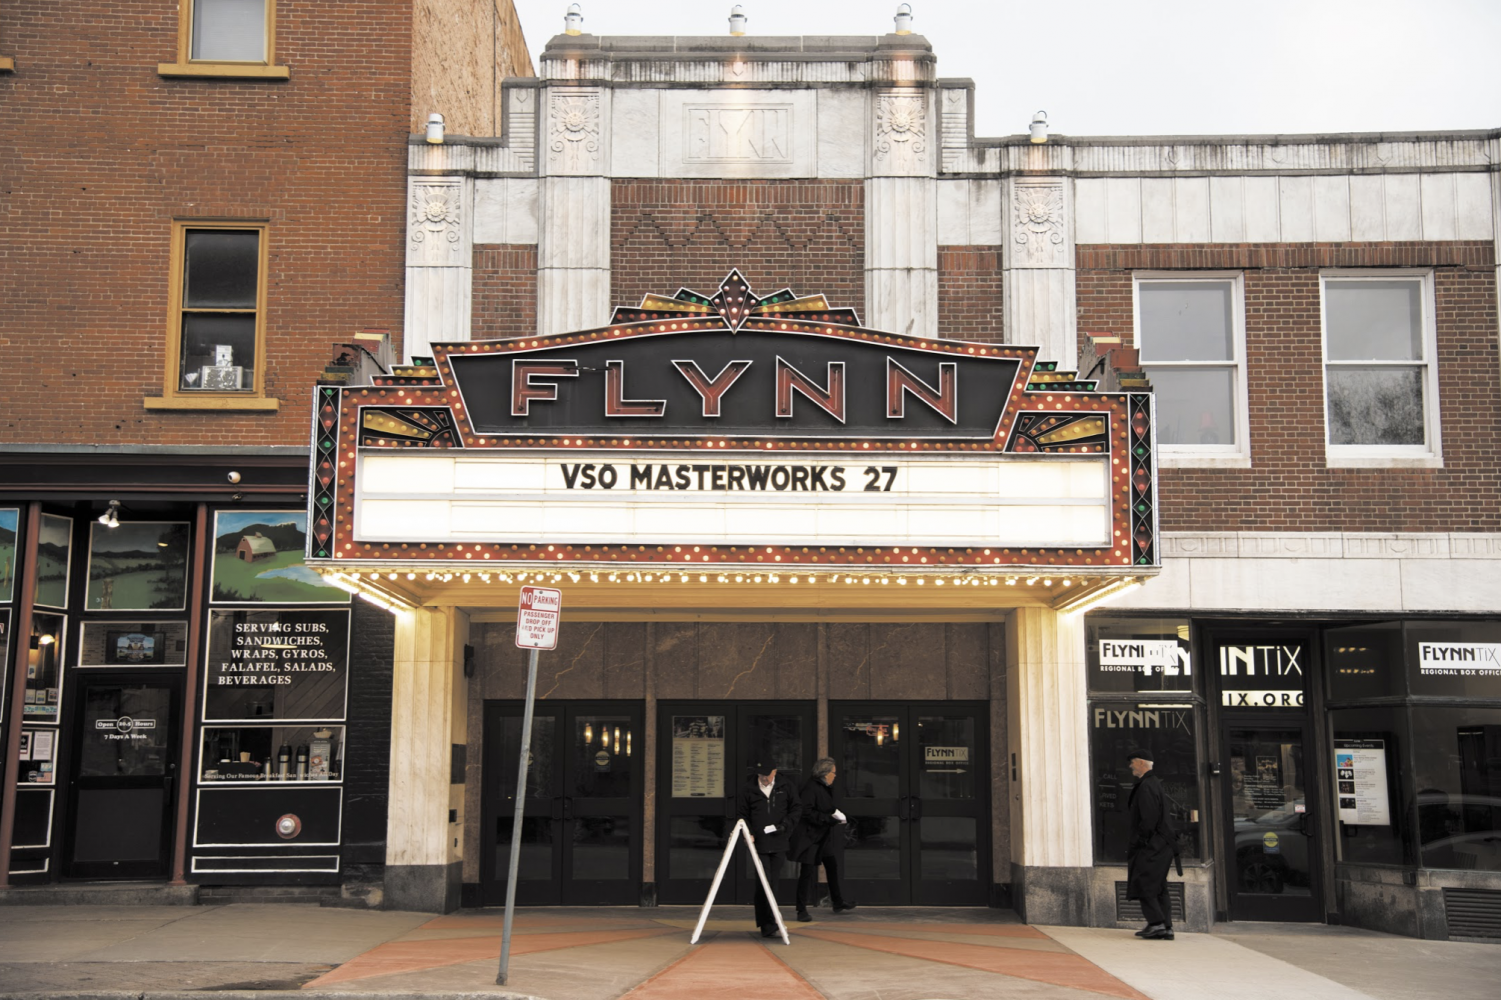 "The sign of the Flynn Center for the Performing Arts on Main Street advertises the show,""VSO Masterworks"" April 27. If you enjoy classical music, Paddy Reagan, the talent buyer for ArtsRiot, suggests checking out the Vermont Symphony Orchestra, who play at the Flynn."